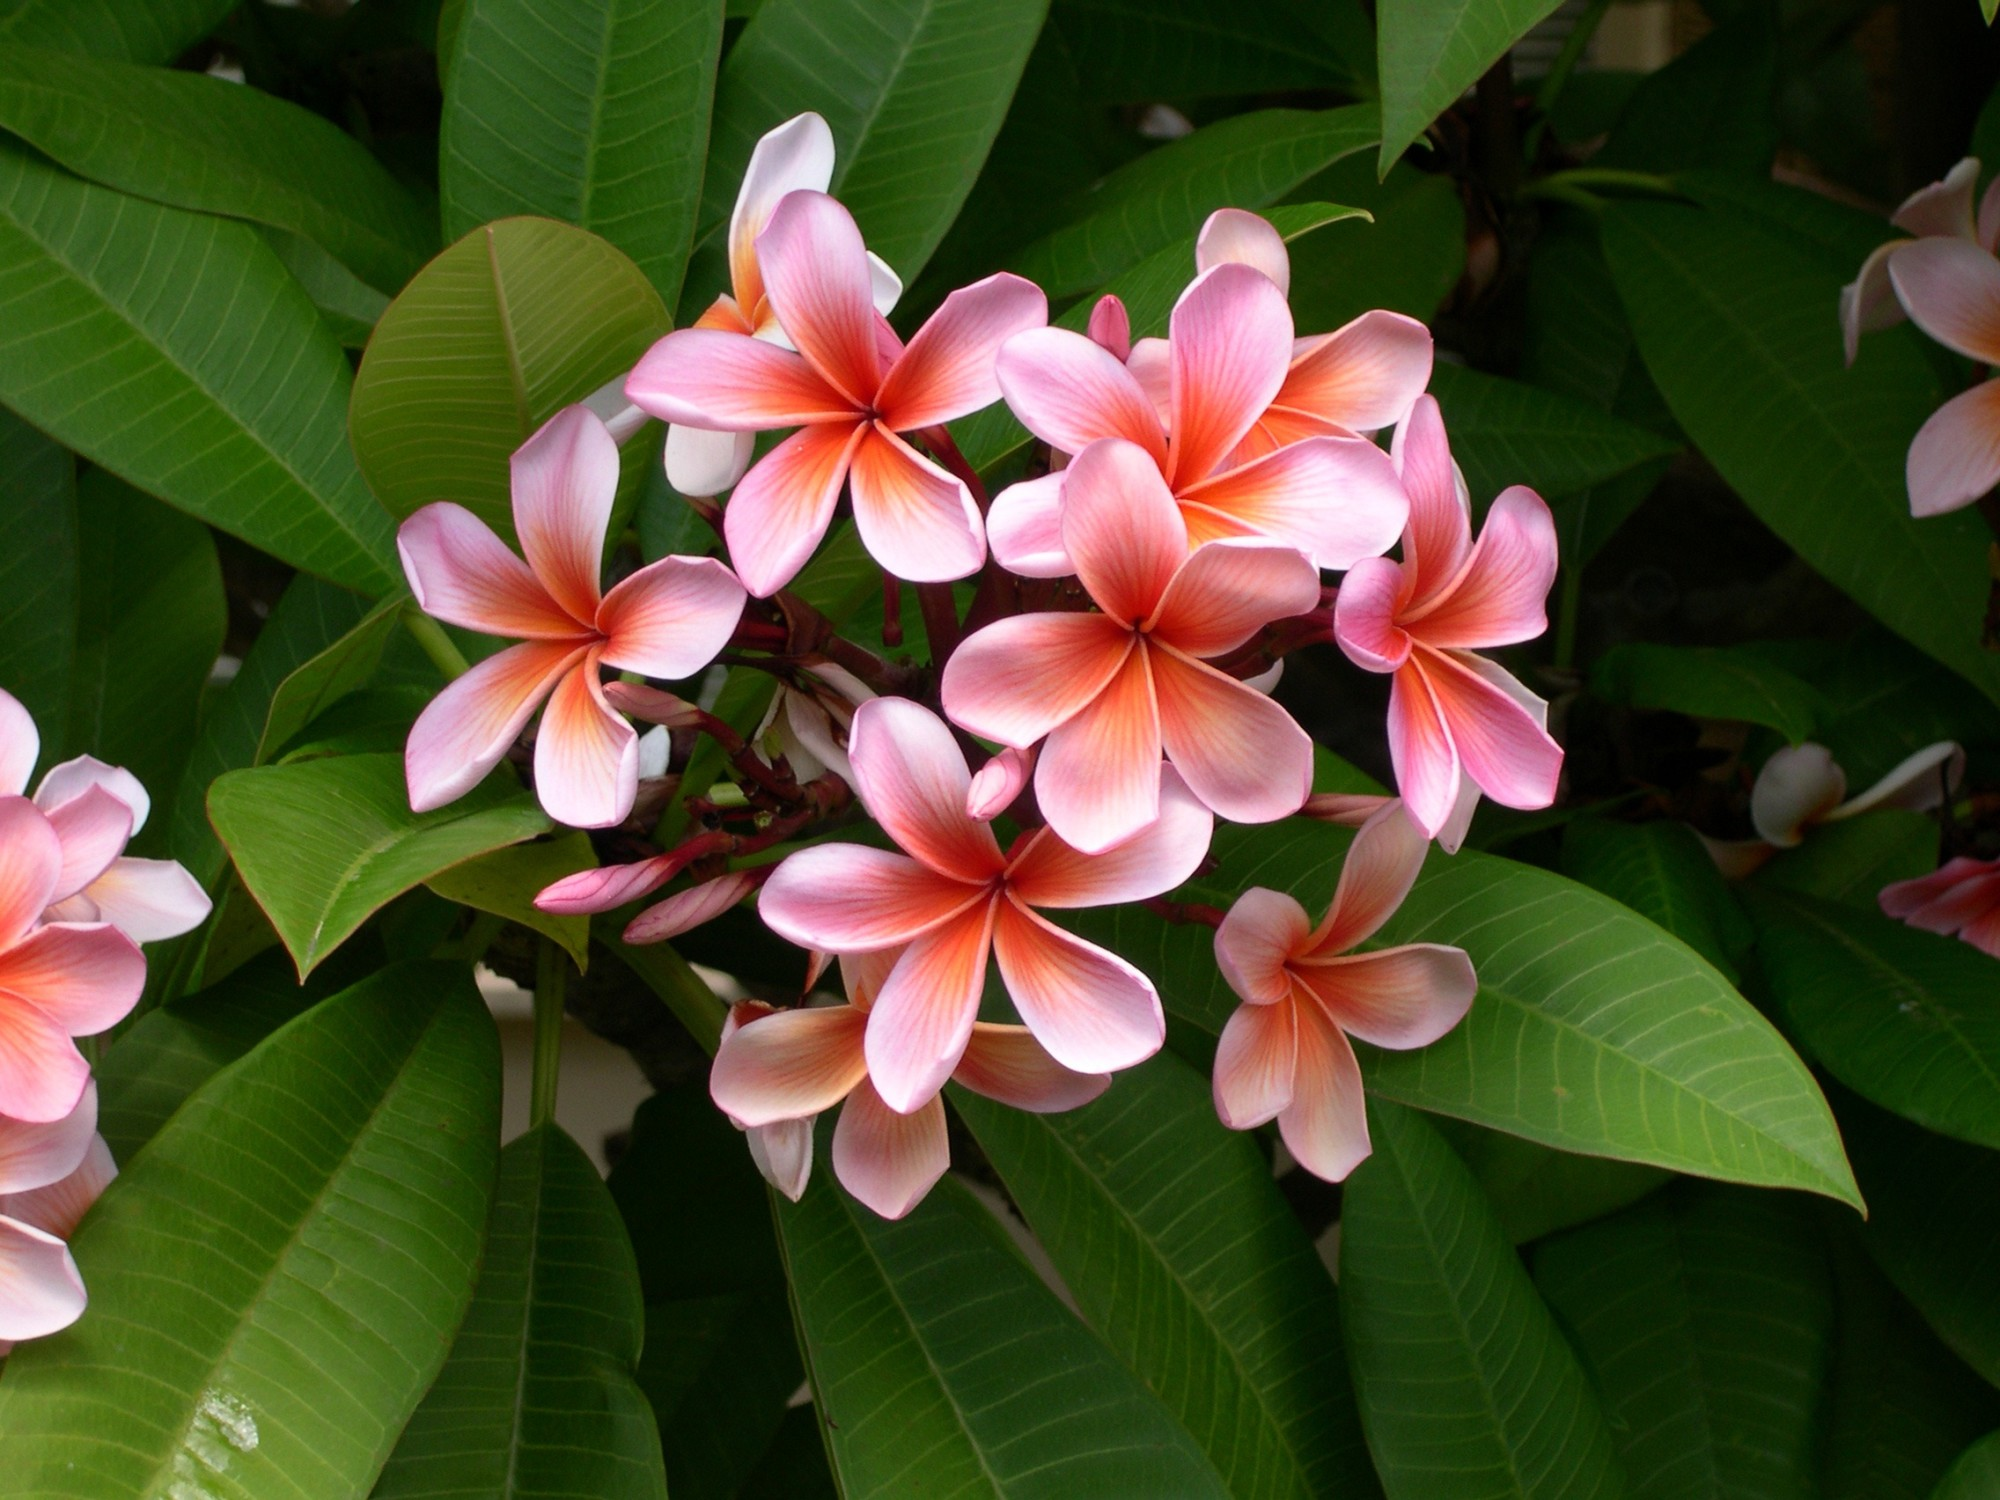 Tropical Flower Symbolism: Spiritual Meanings of Hawaiian